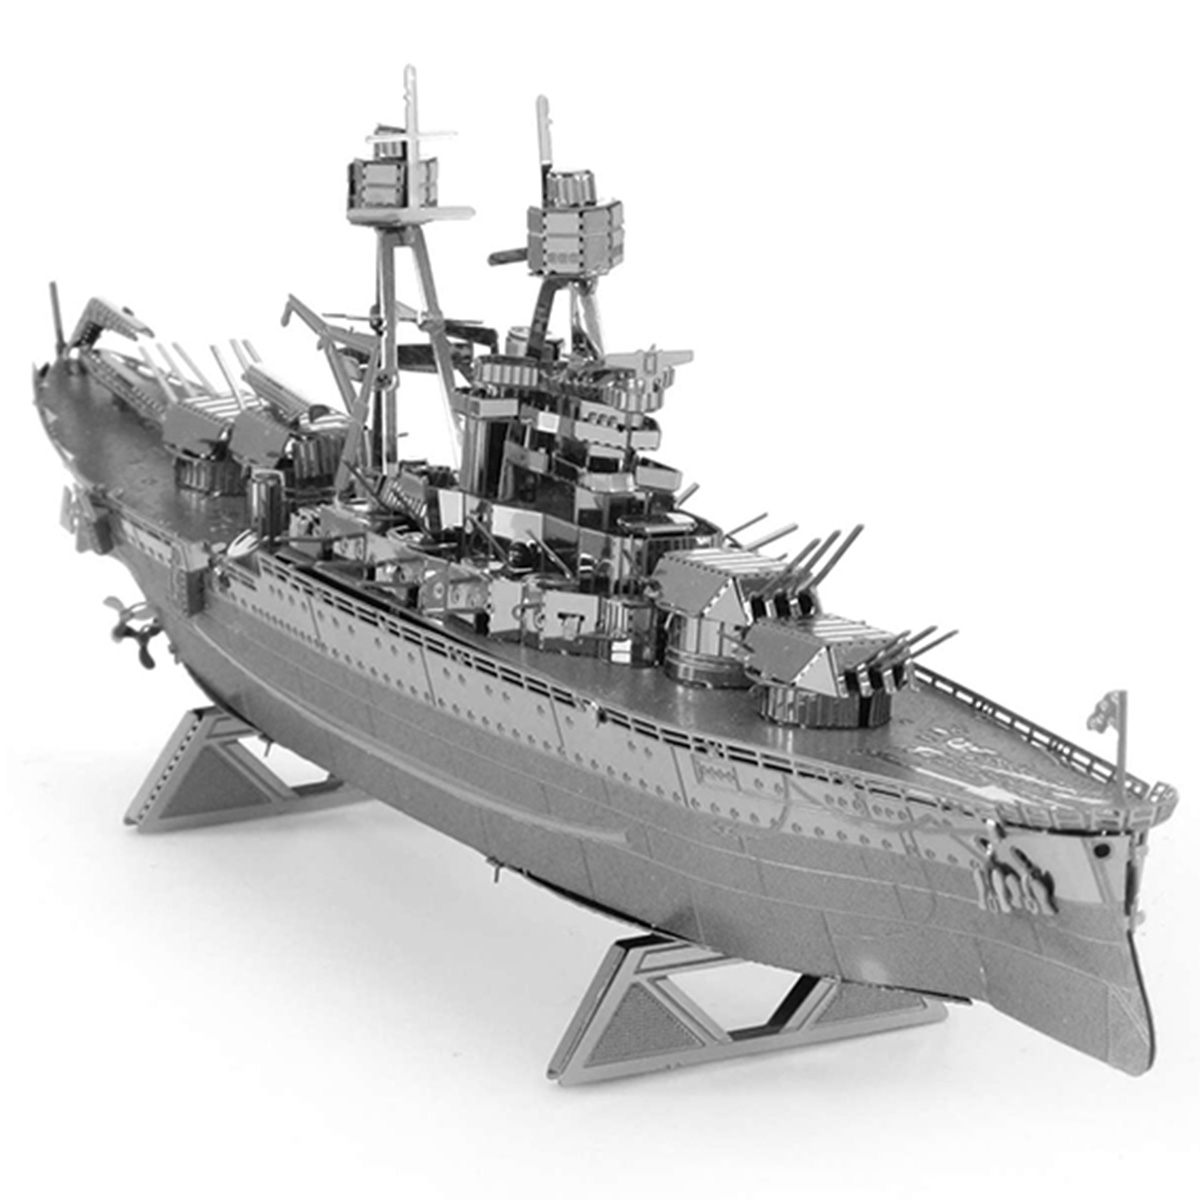 Fascinations Metal Earth 3d Metal Model Diy Kits Metal Earth Uss Arizona 3d Model Kit